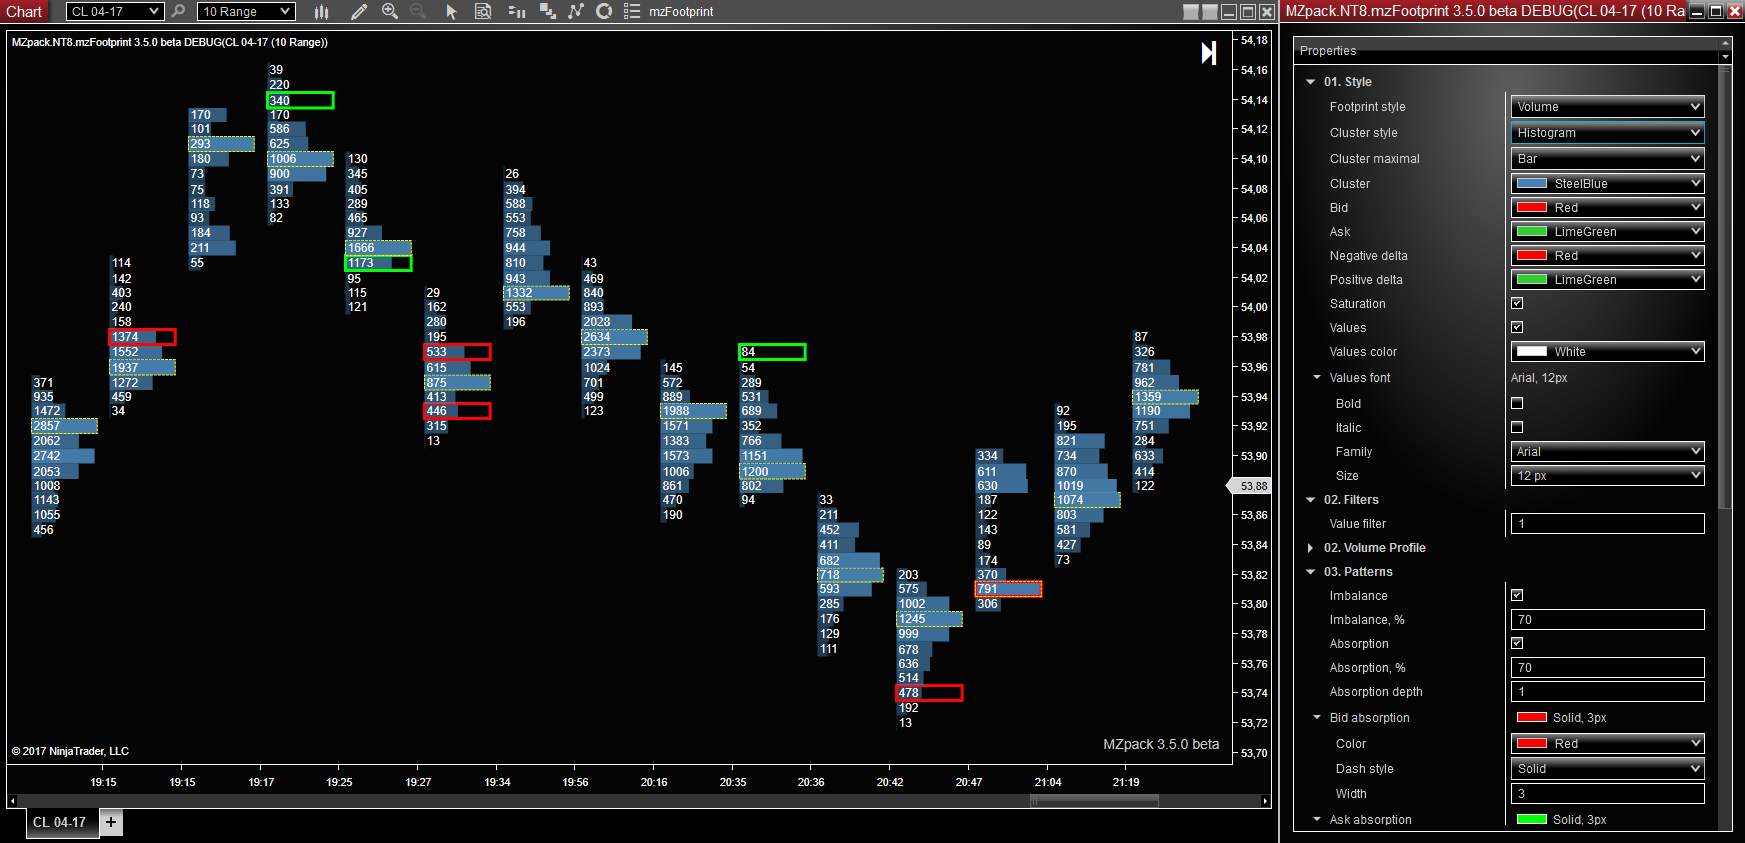 mzpack-footprint-indicator-for-ninjatrader-8-clusters